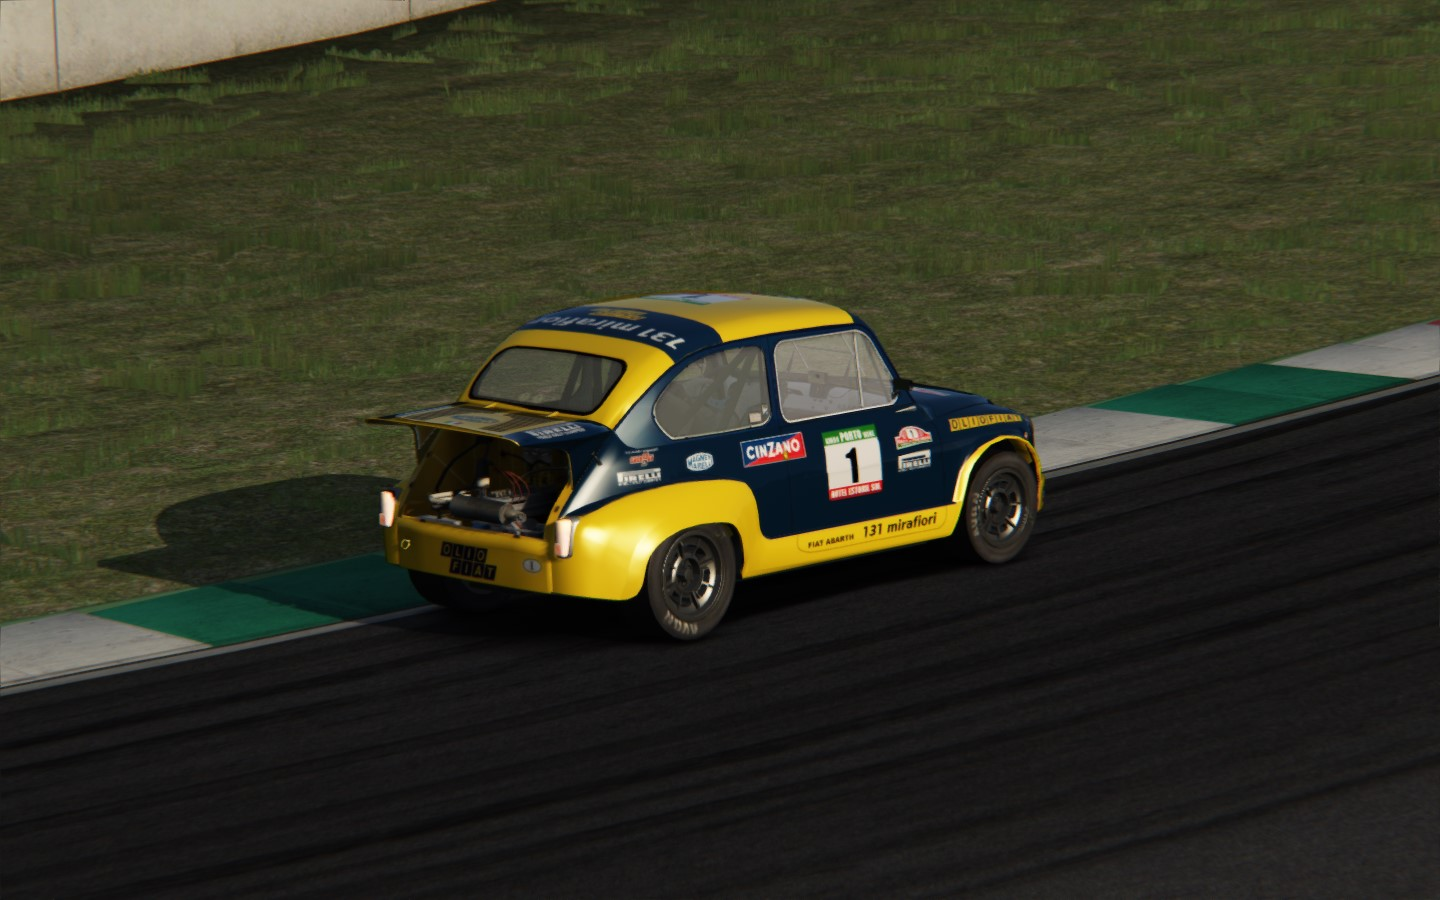 Screenshot_abarth_1000tc_mugello_22-1-116-23-14-10.jpg